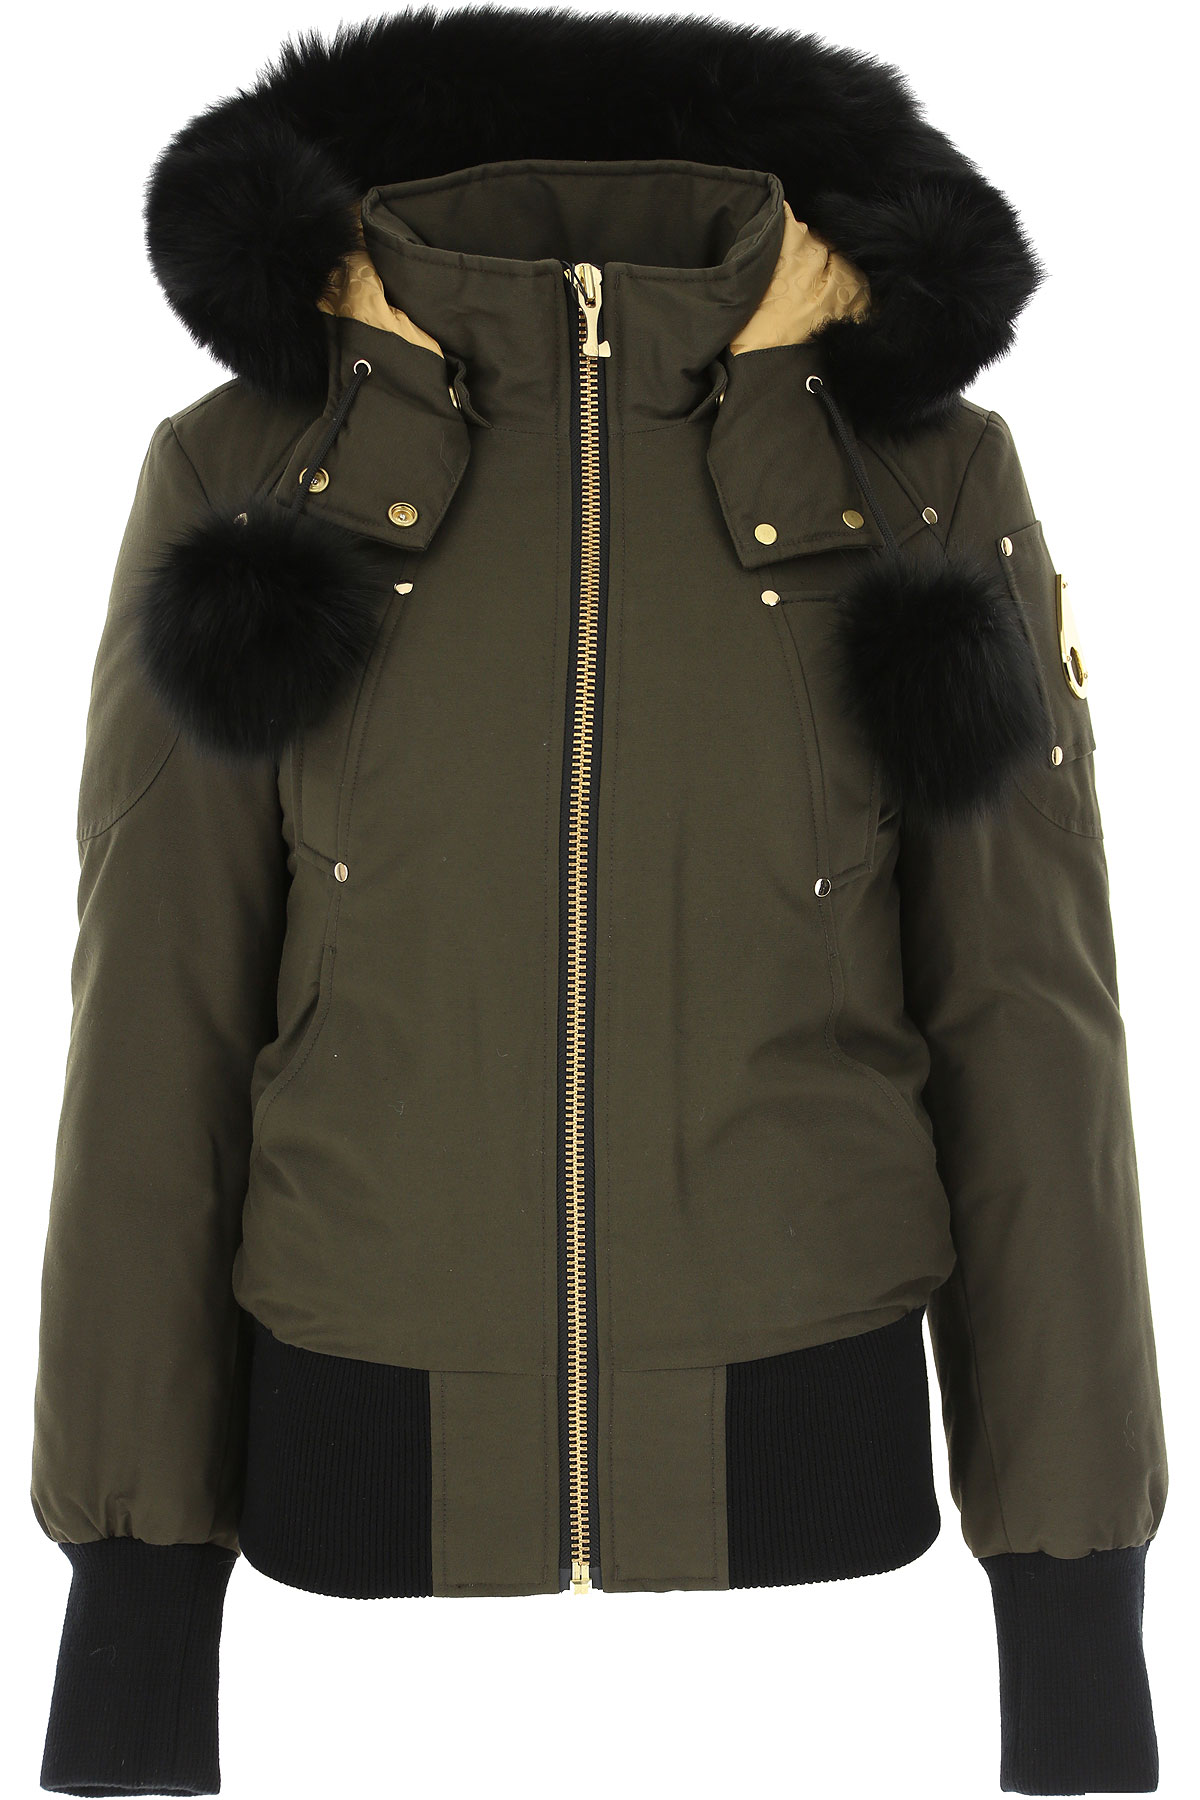 Moose Knuckles Down Jacket for Women, Puffer Ski Jacket On Sale, Military Green, Down, 2019, 2 4 6